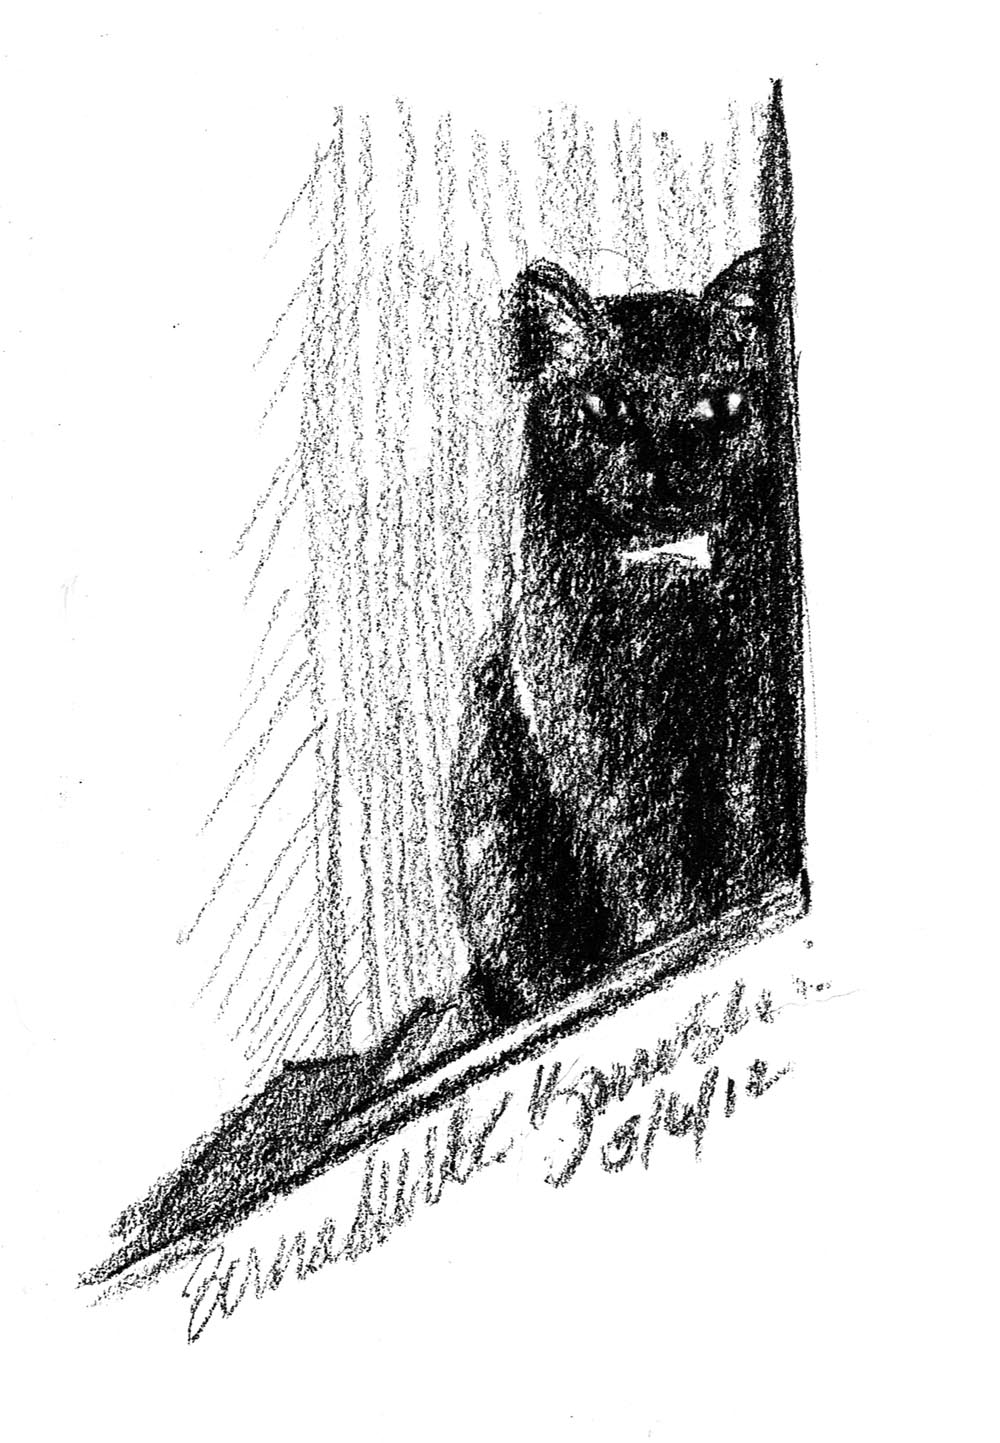 charcoal sketch of cat sitting on steps